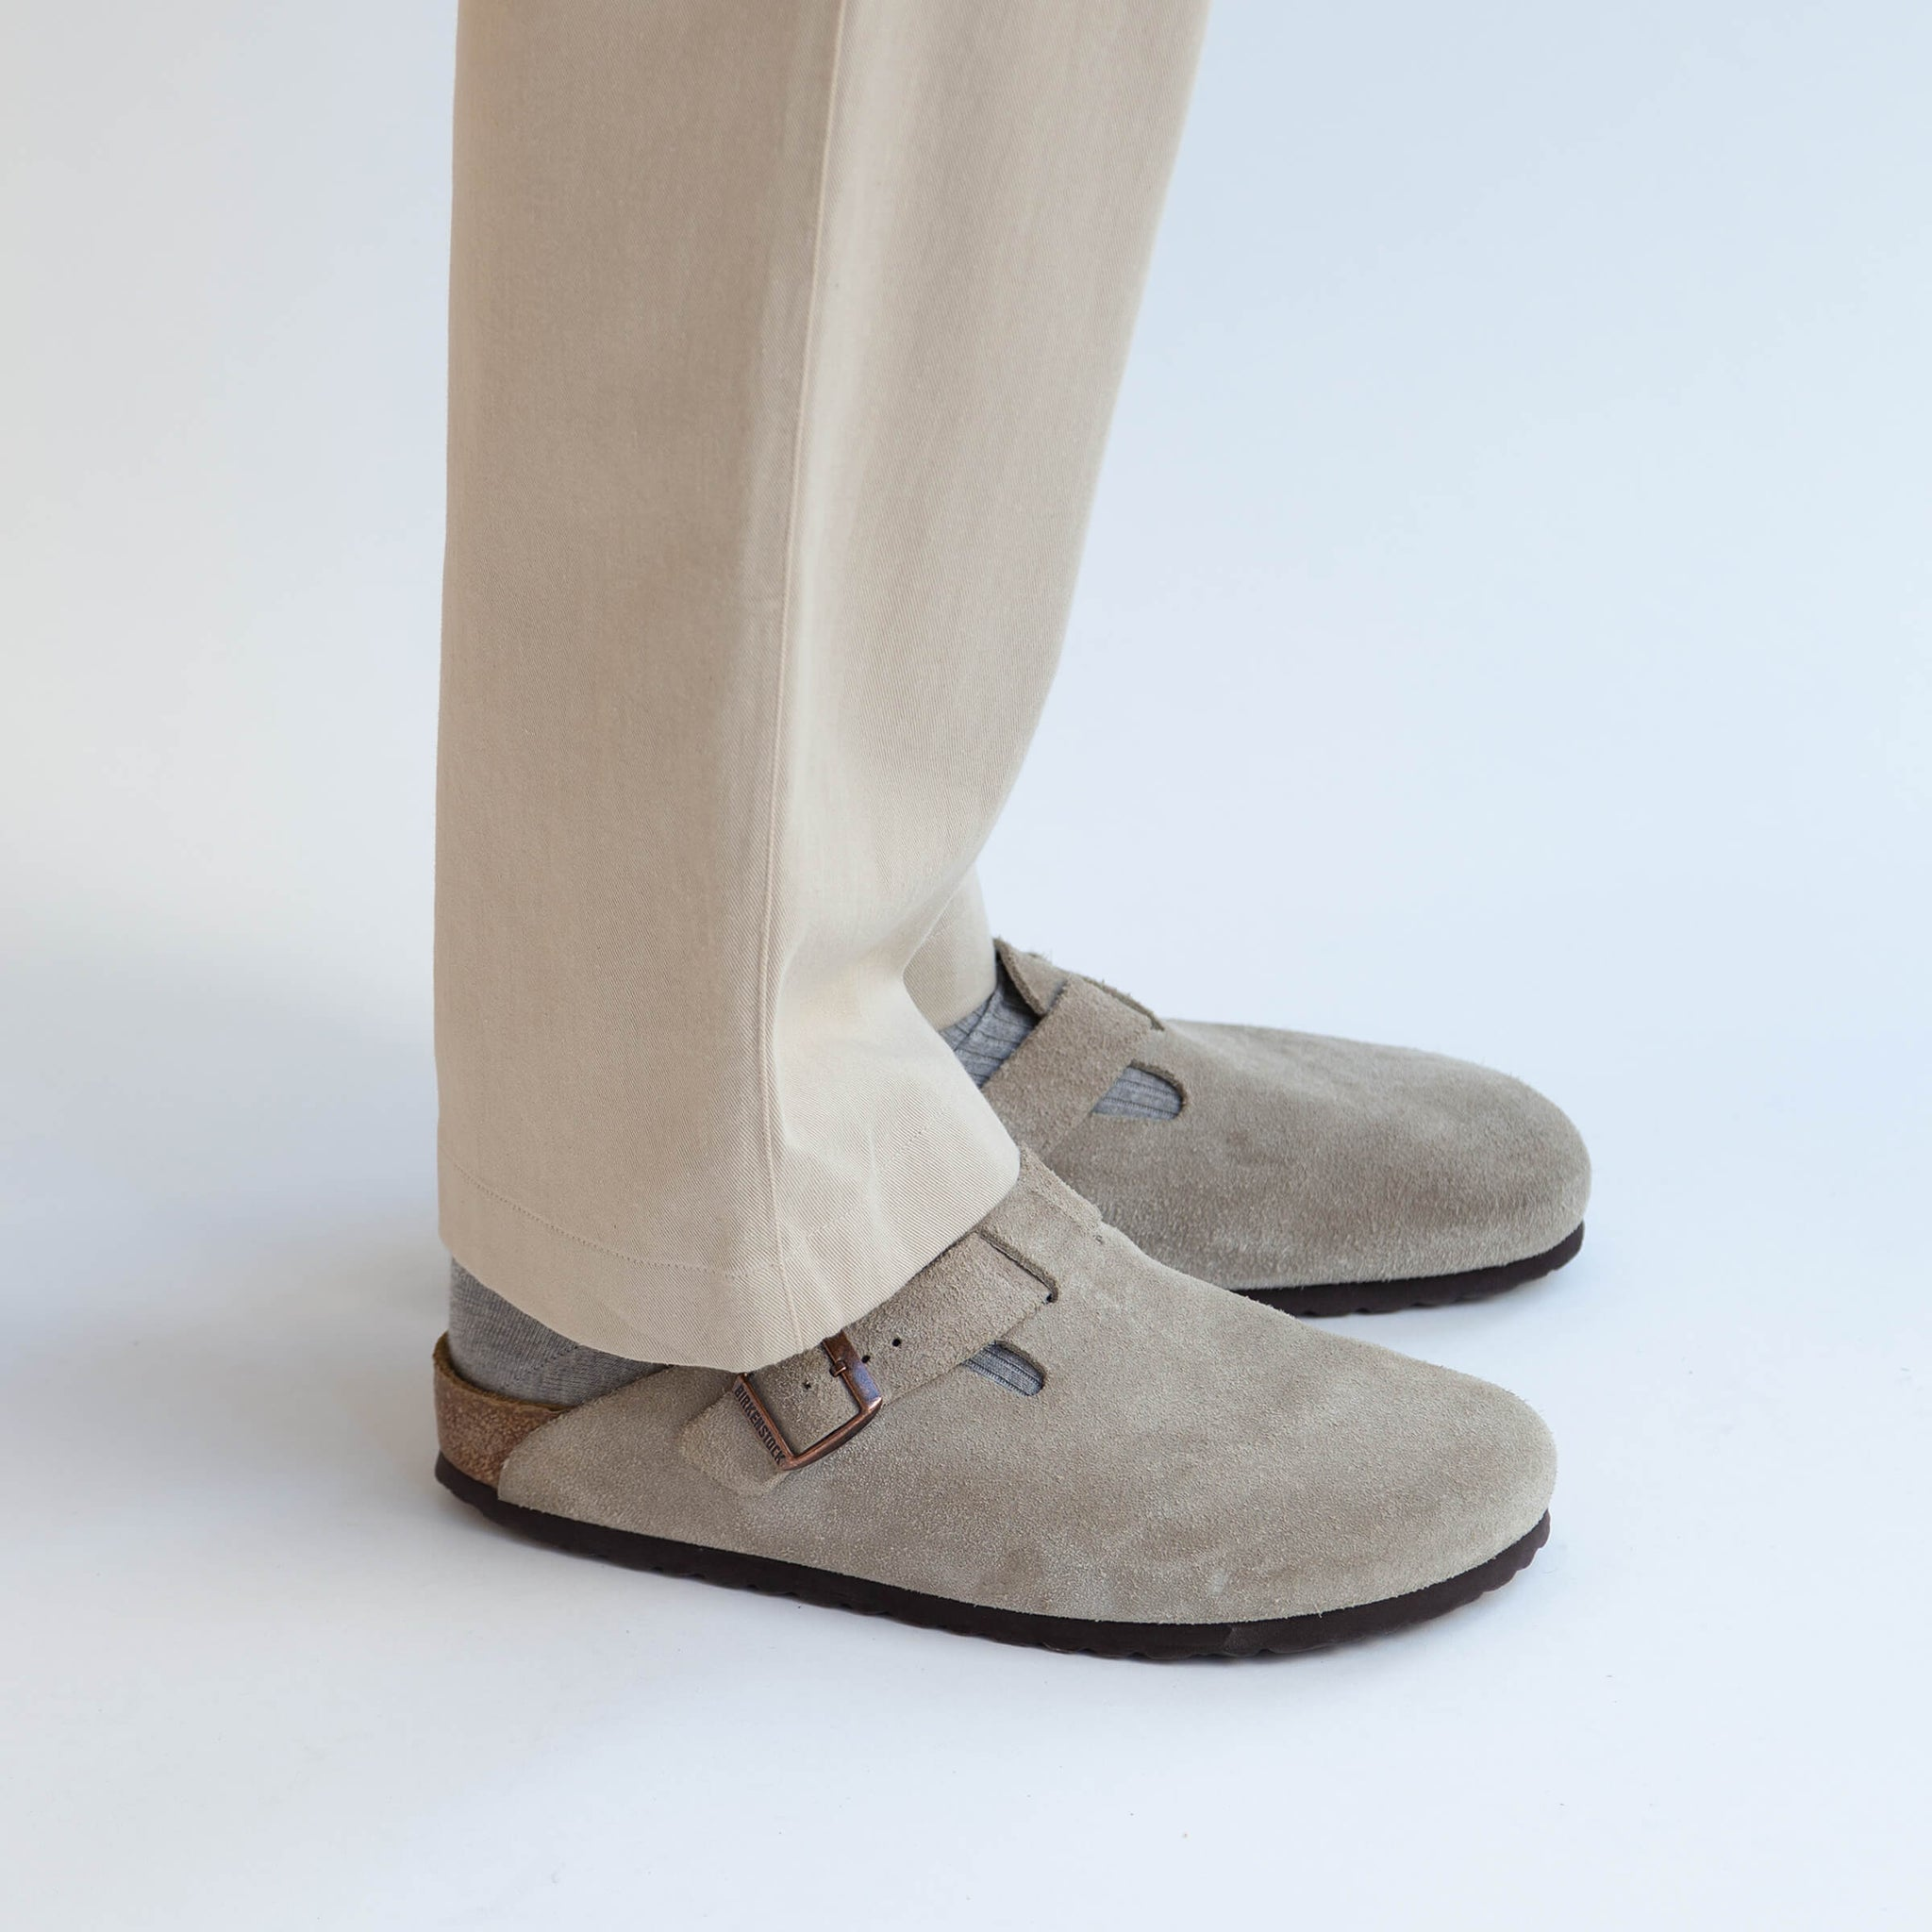 Drawstring Trousers Khaki - Unrecorded